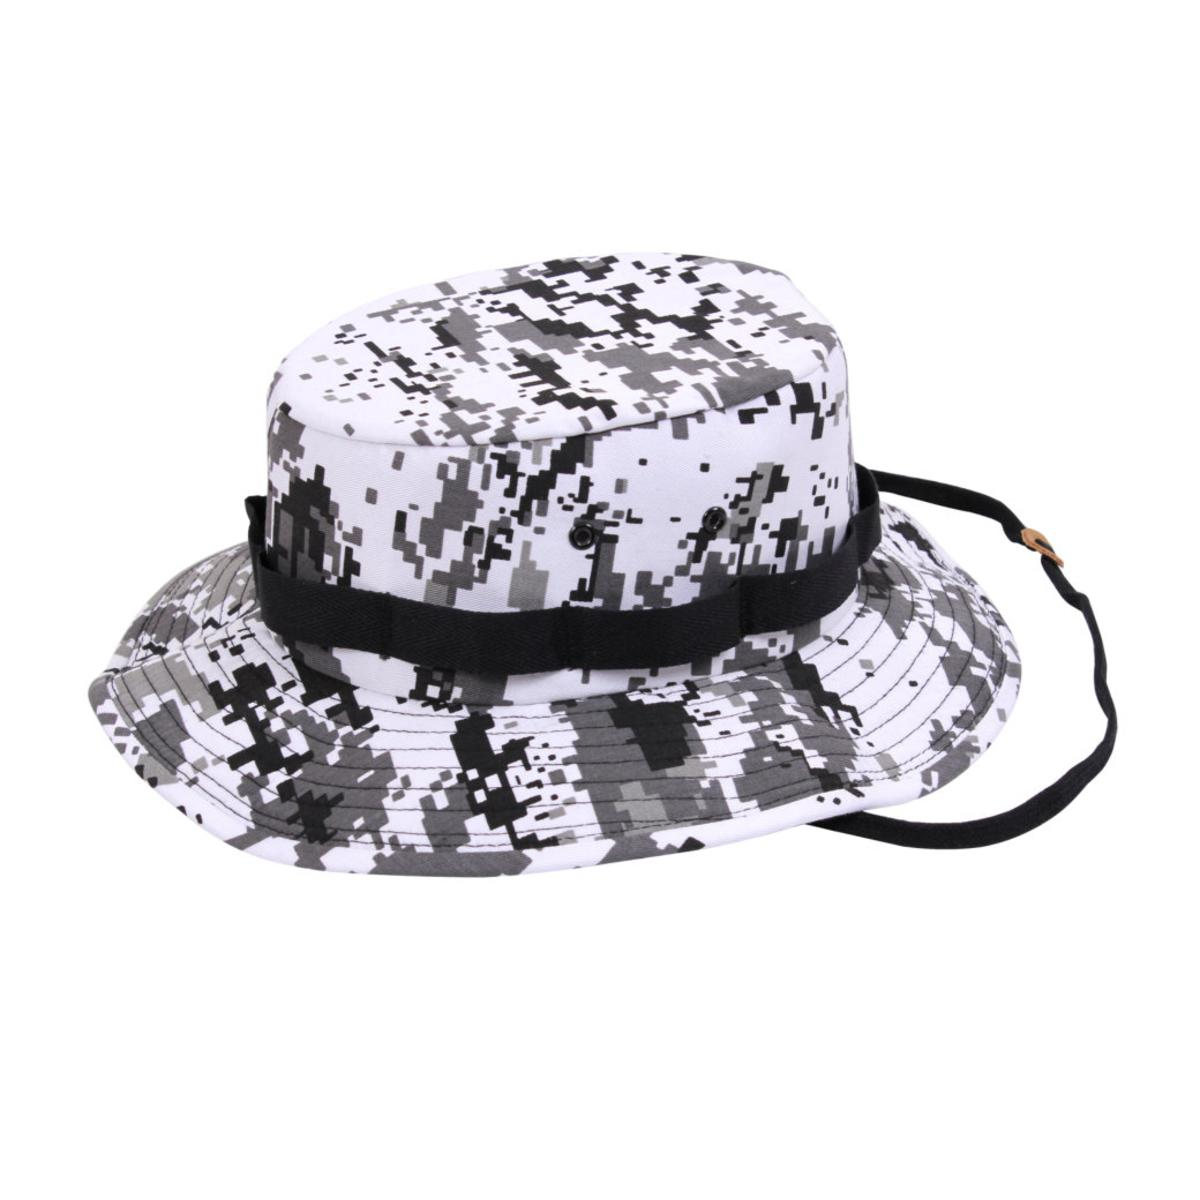 Rothco Military Style Boonie Hat, Jungle/Bucket Hat, City Digital Camo